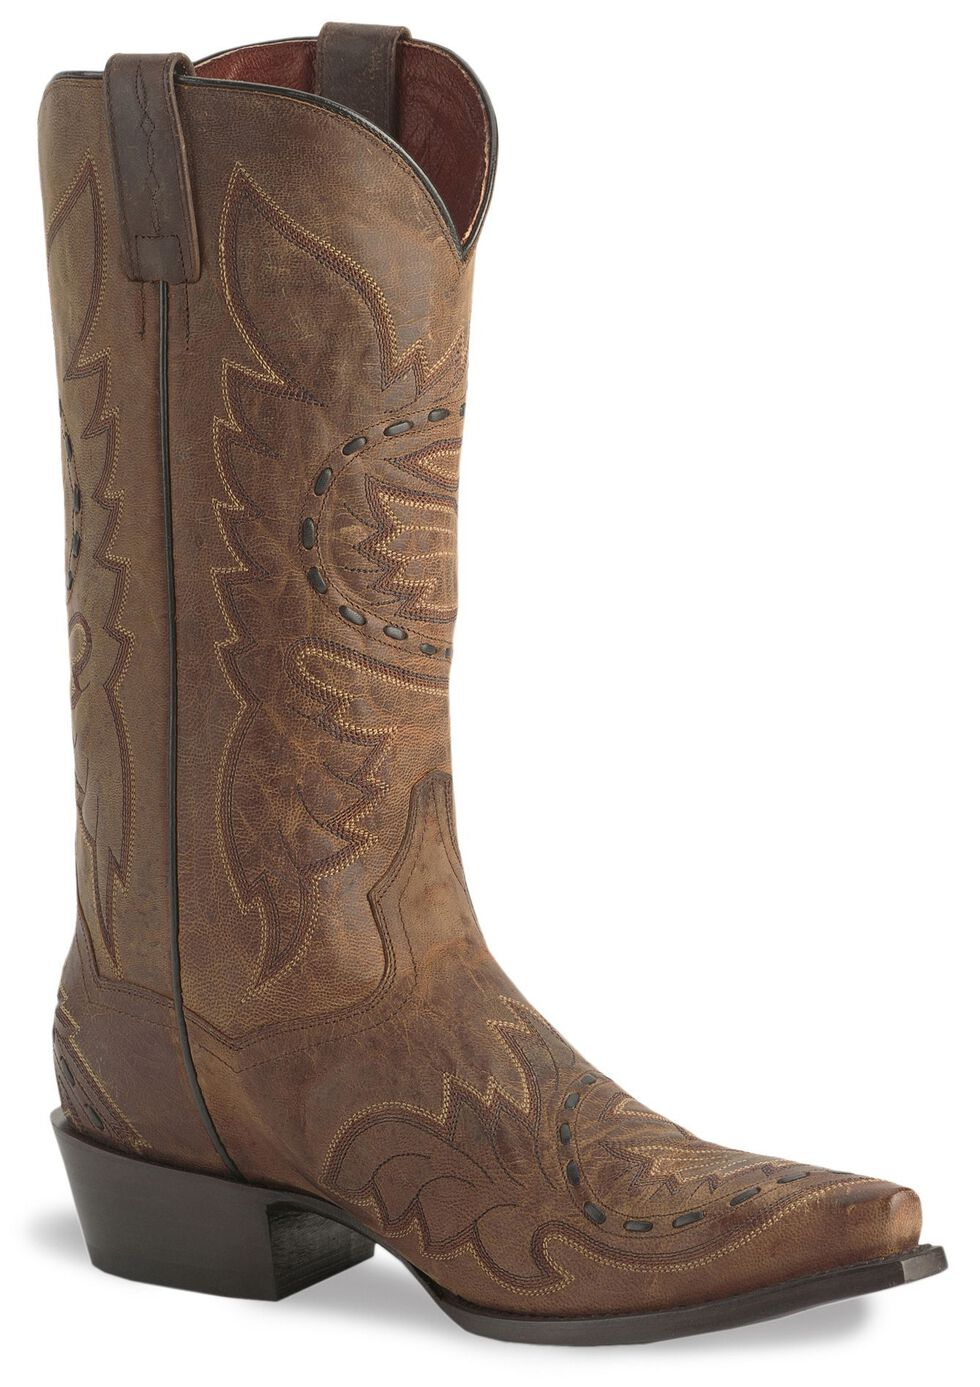 Dan Post Side Winder Distressed Cowboy Boots, Bay Apache, hi-res